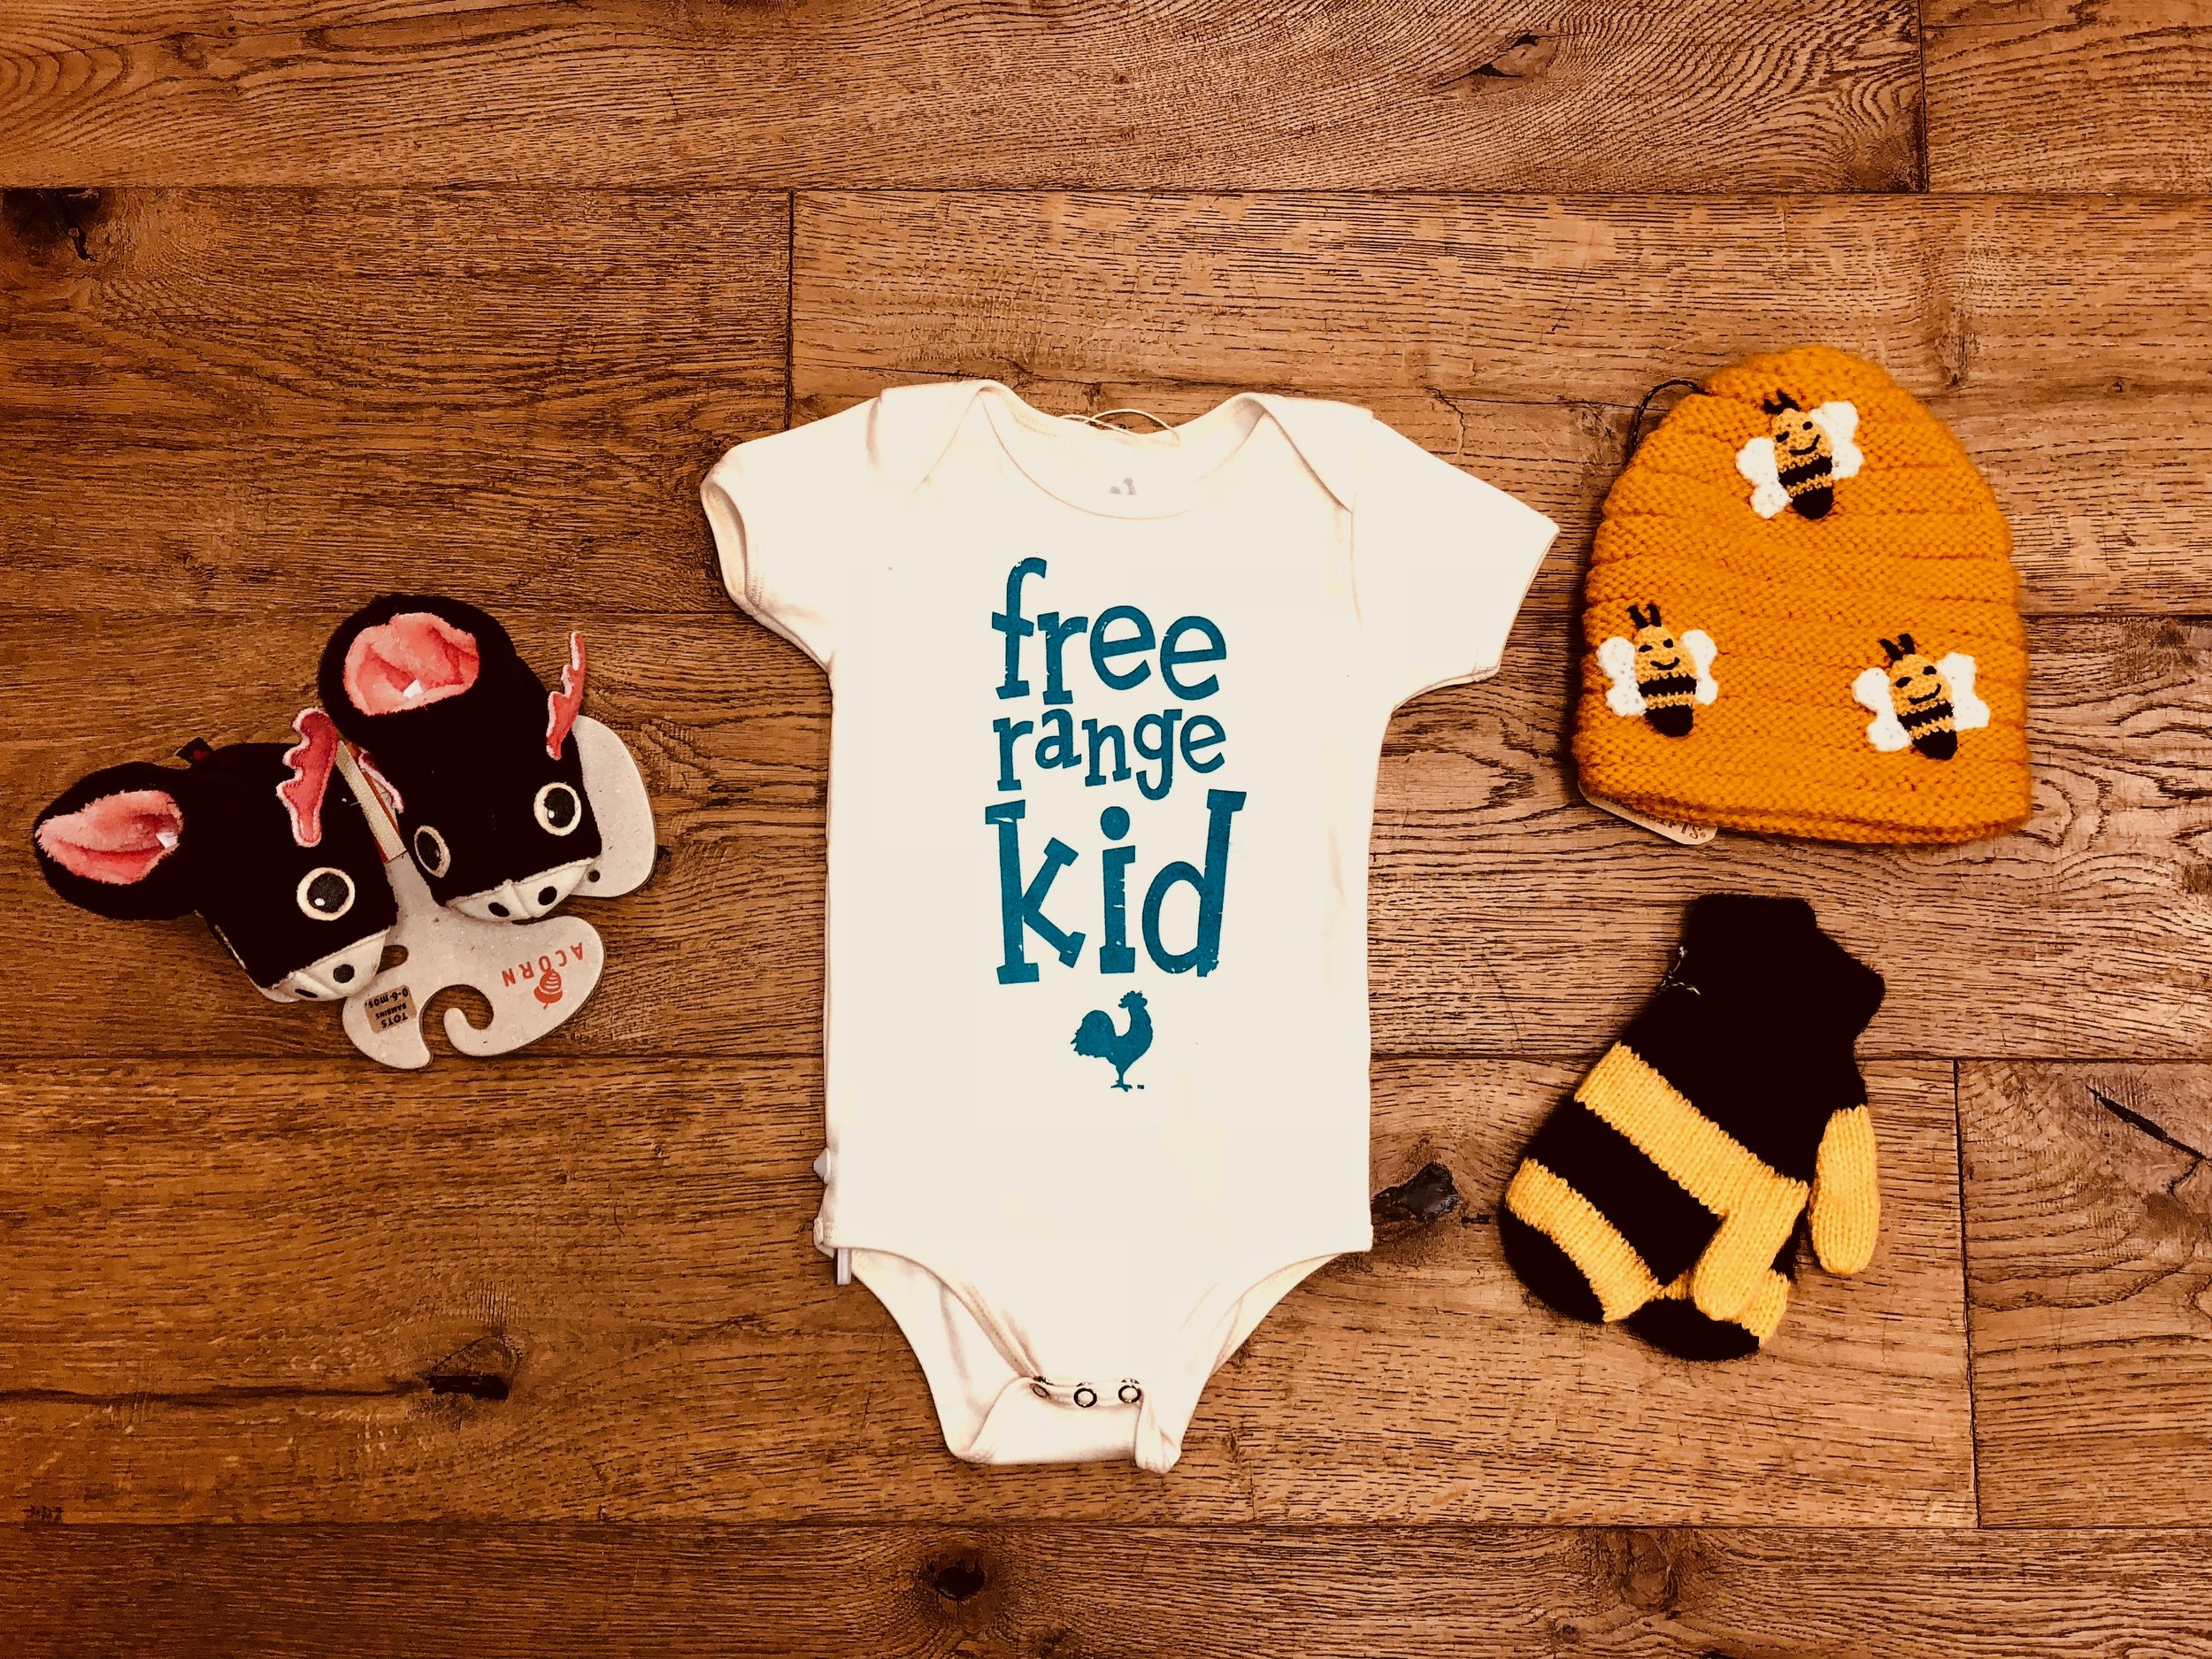 WONDER  - For the cute babes in your life we have onesies from Locally Grown, animal slippers from Acorn and fun winter accessories from Andes Gifts.